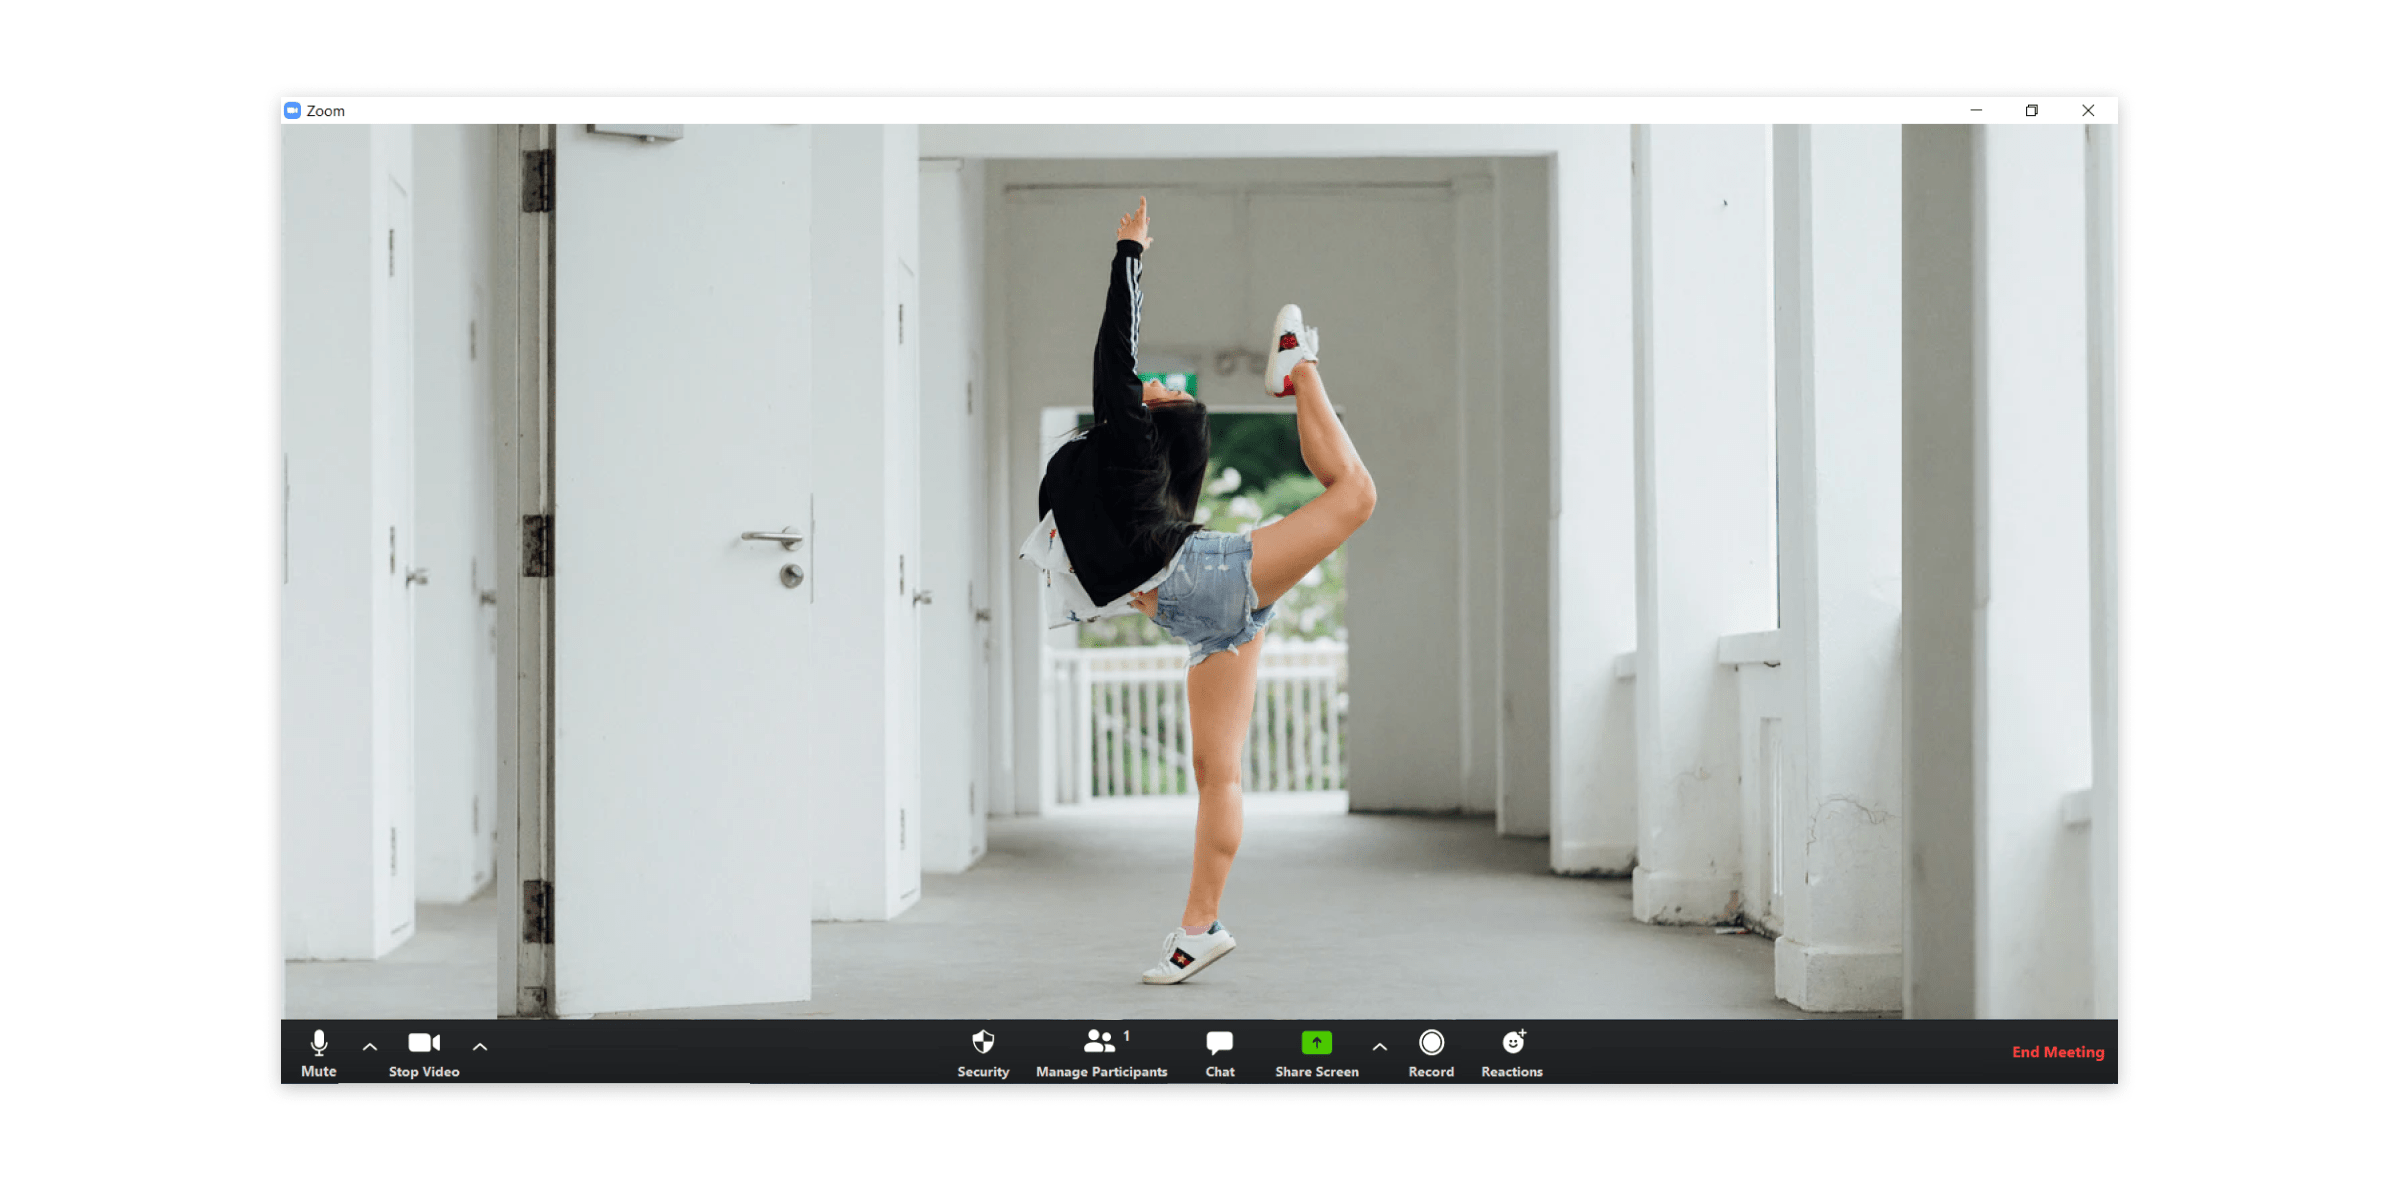 Live streaming dance classes on Zoom